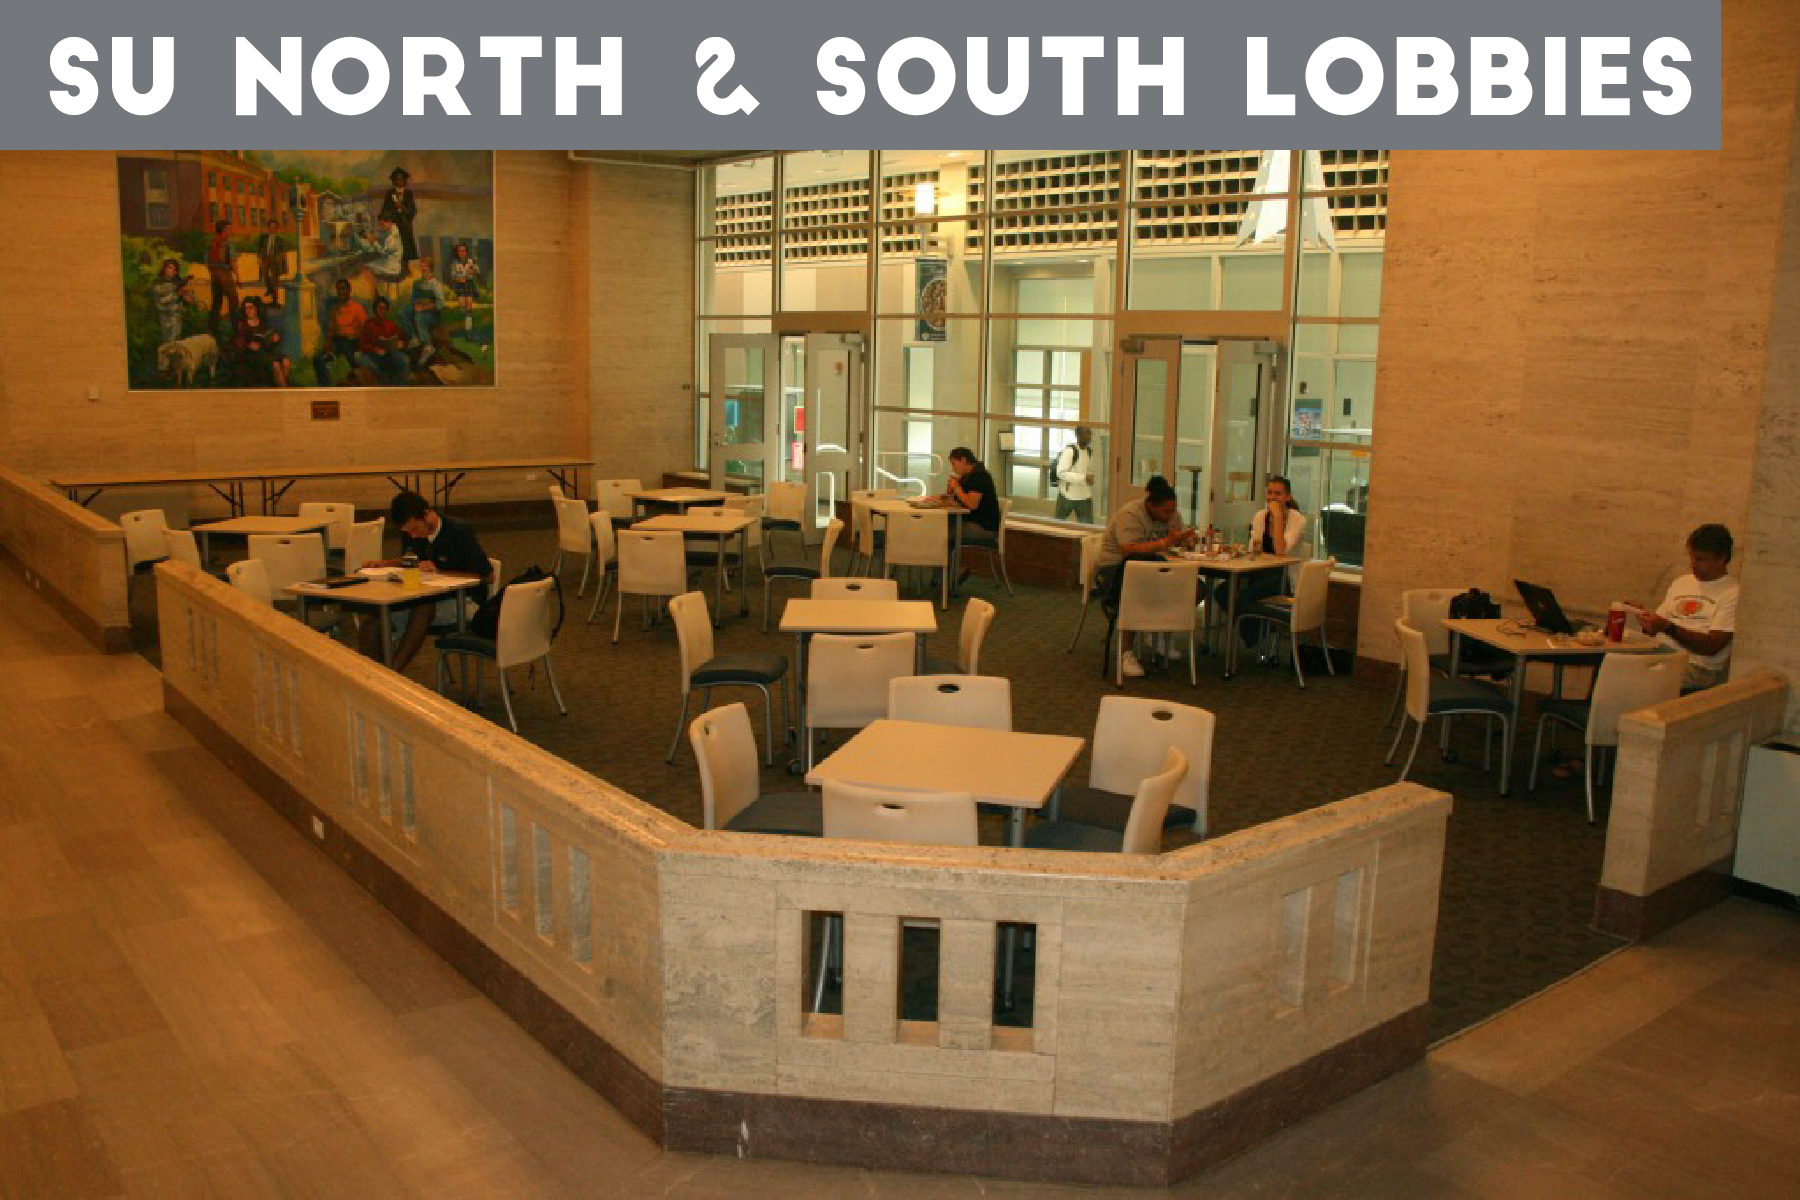 Student Union North and South Lobbies